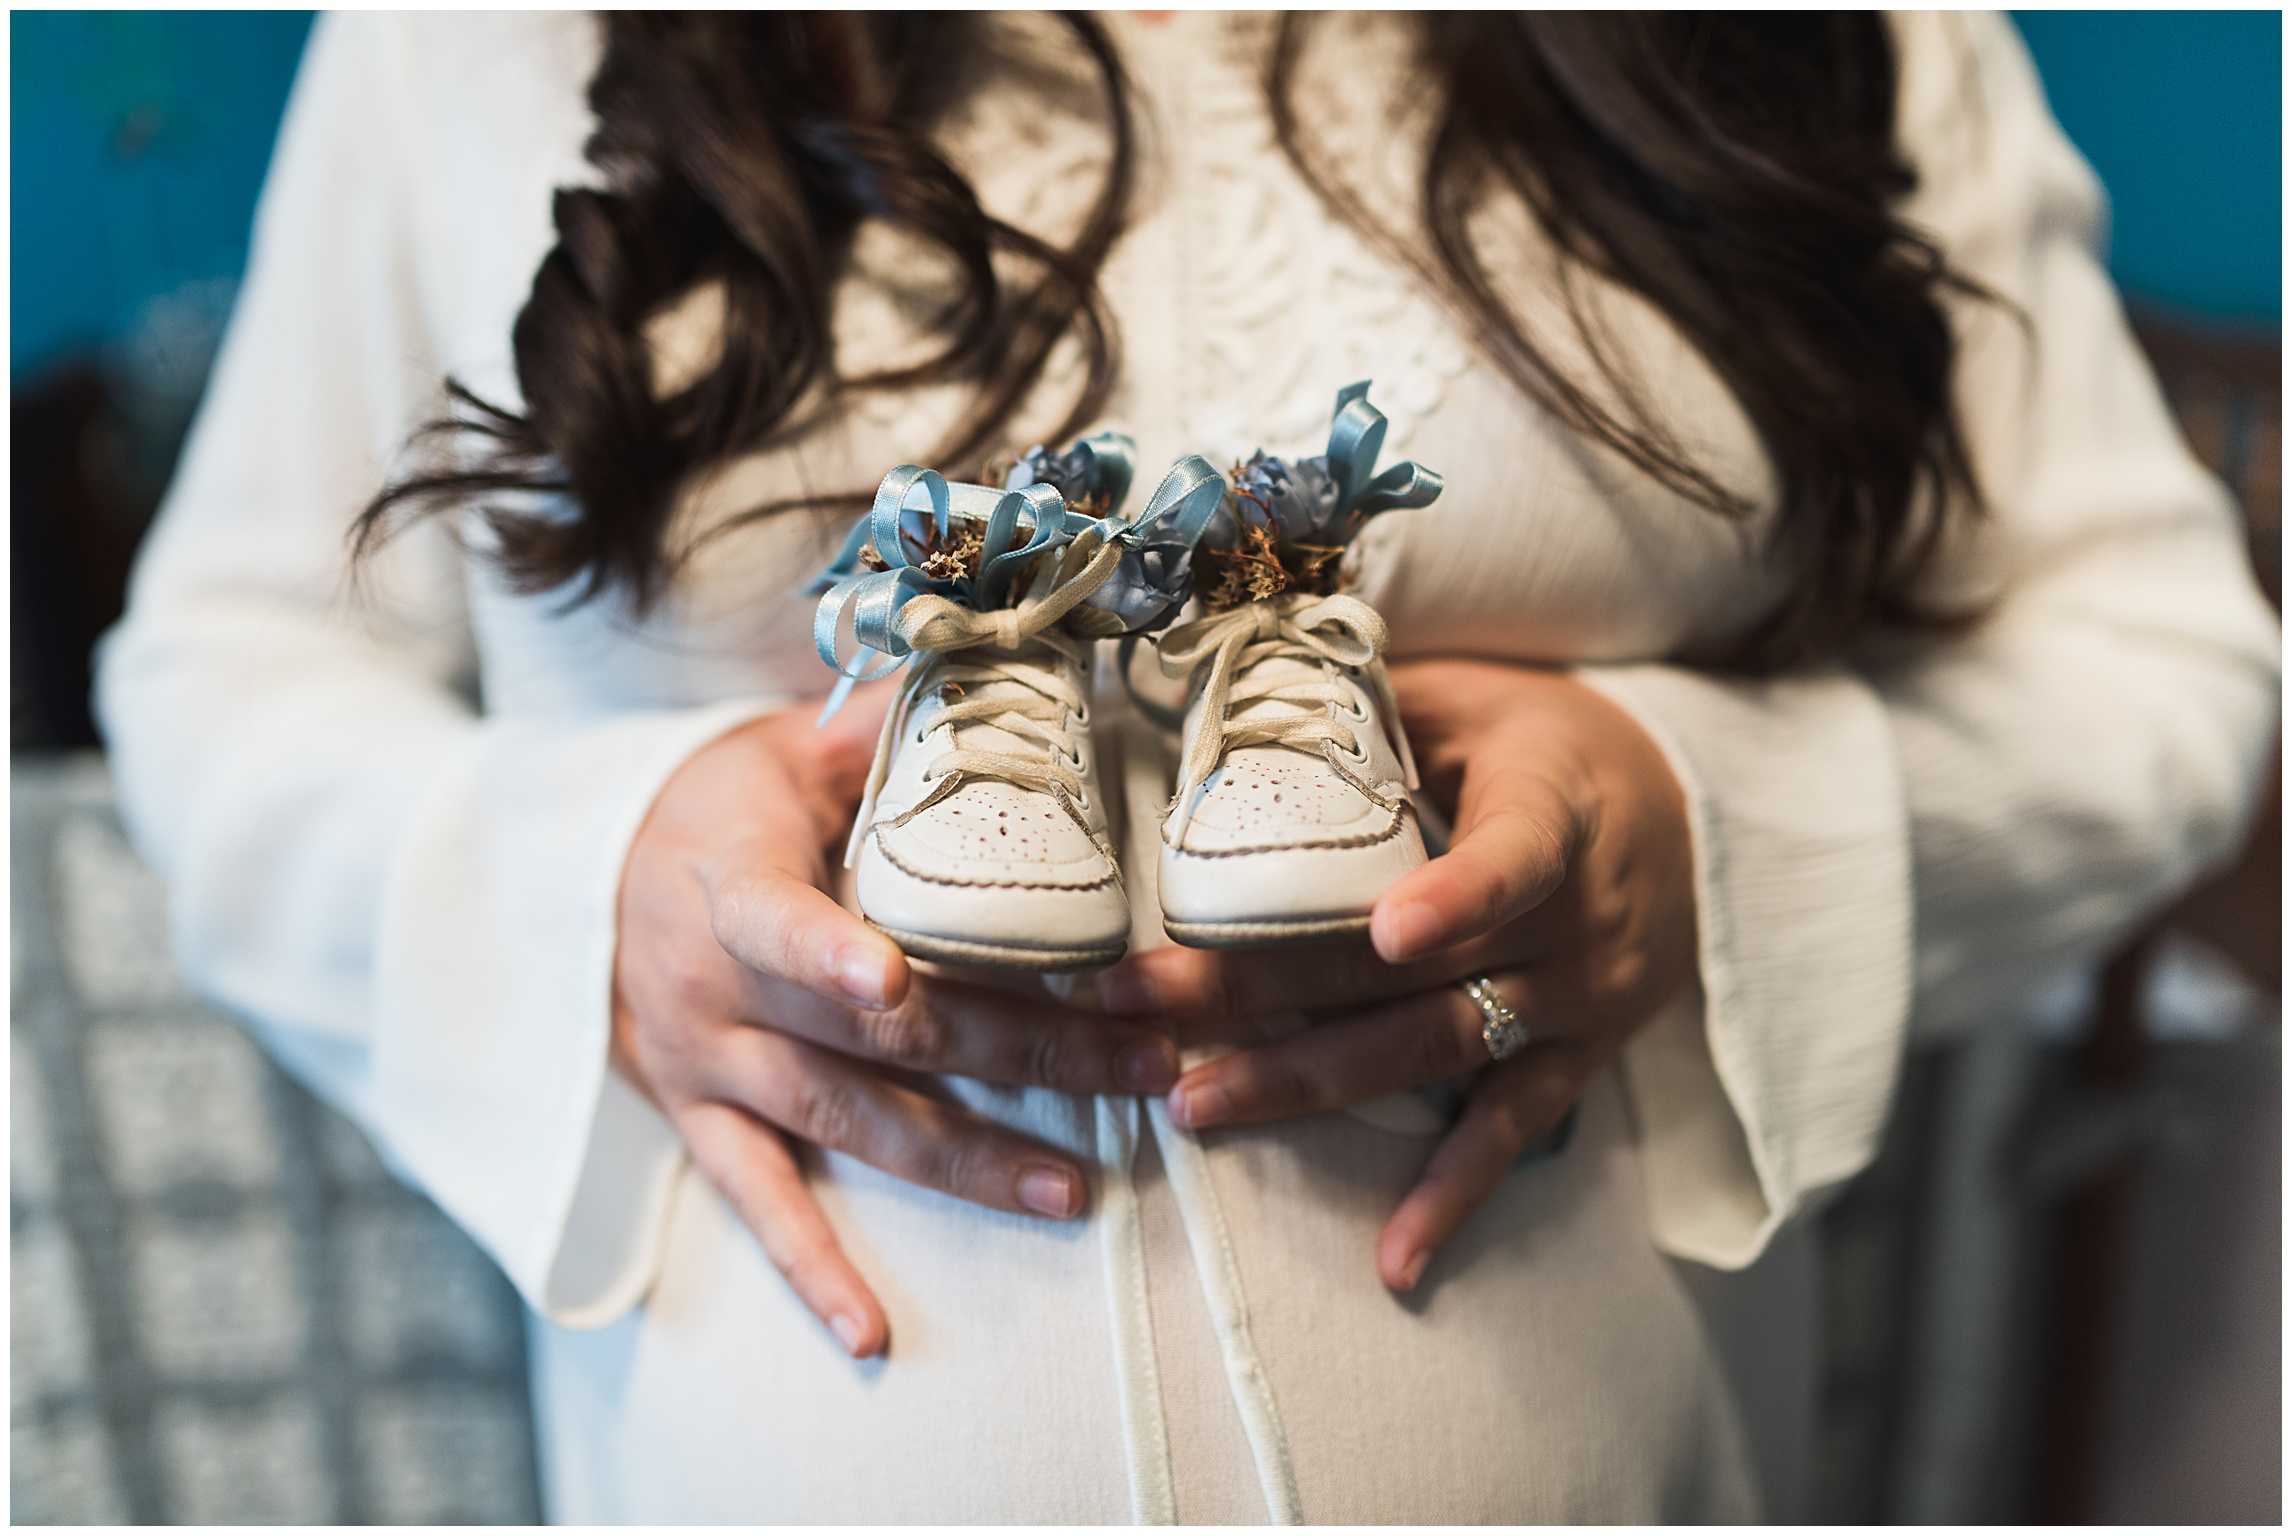 baby-shoes-mother-materinty-film-sonjakphotography-sonja-k-photography-rocky-mountains-meet-the-plains-film-look